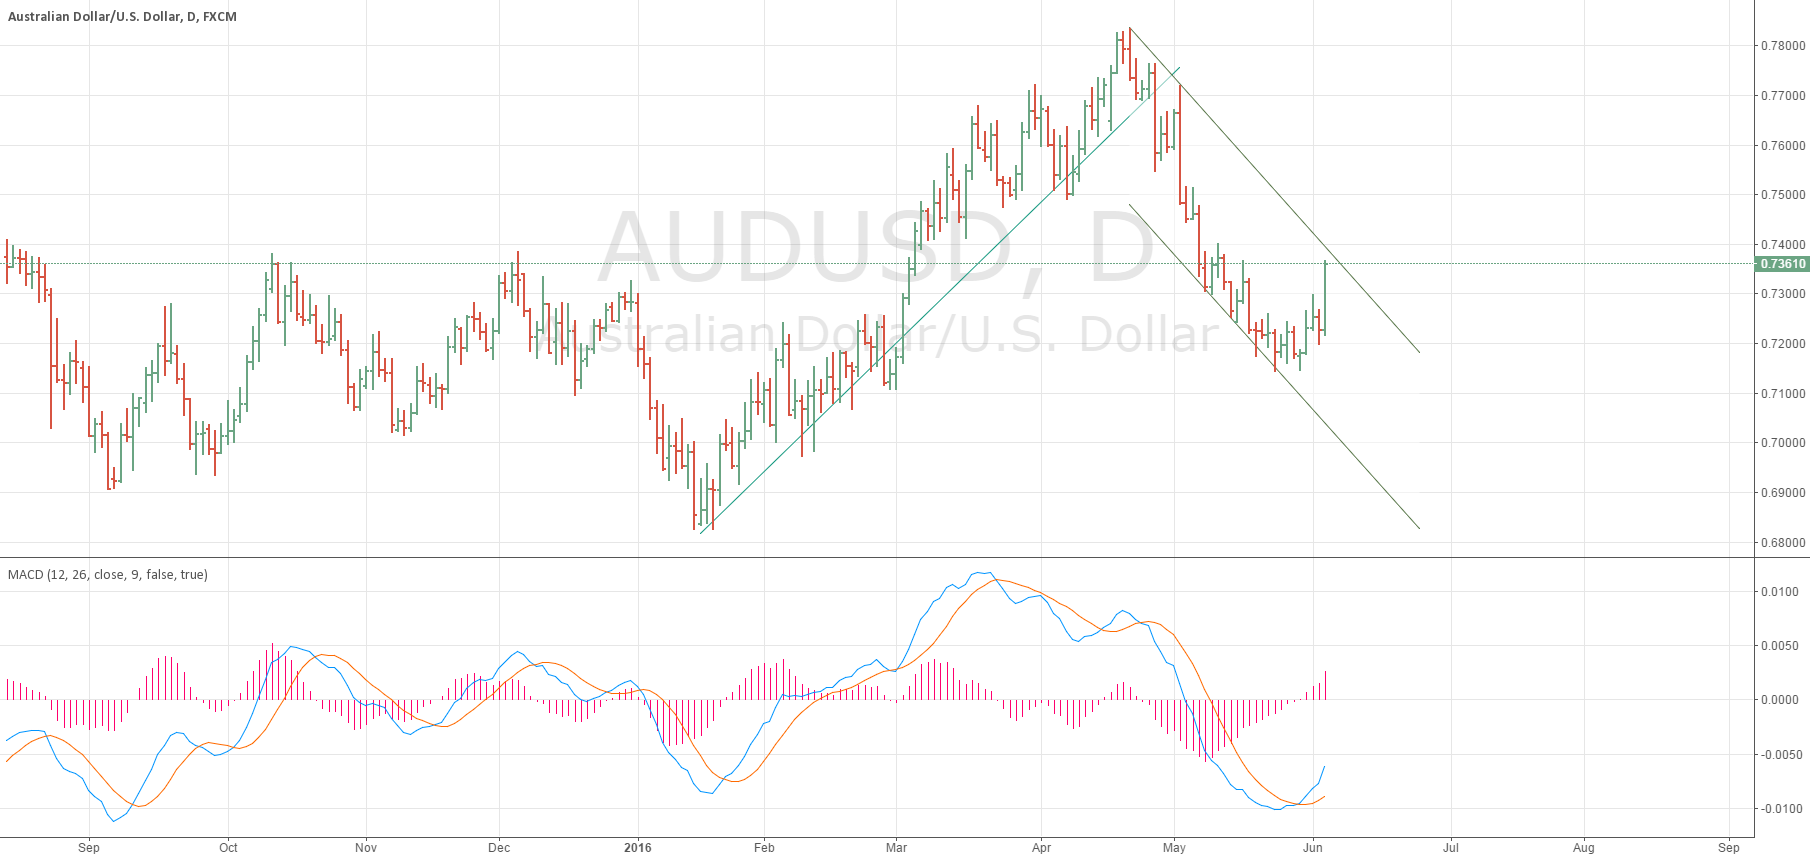 aud/usd where you guys think it will go?